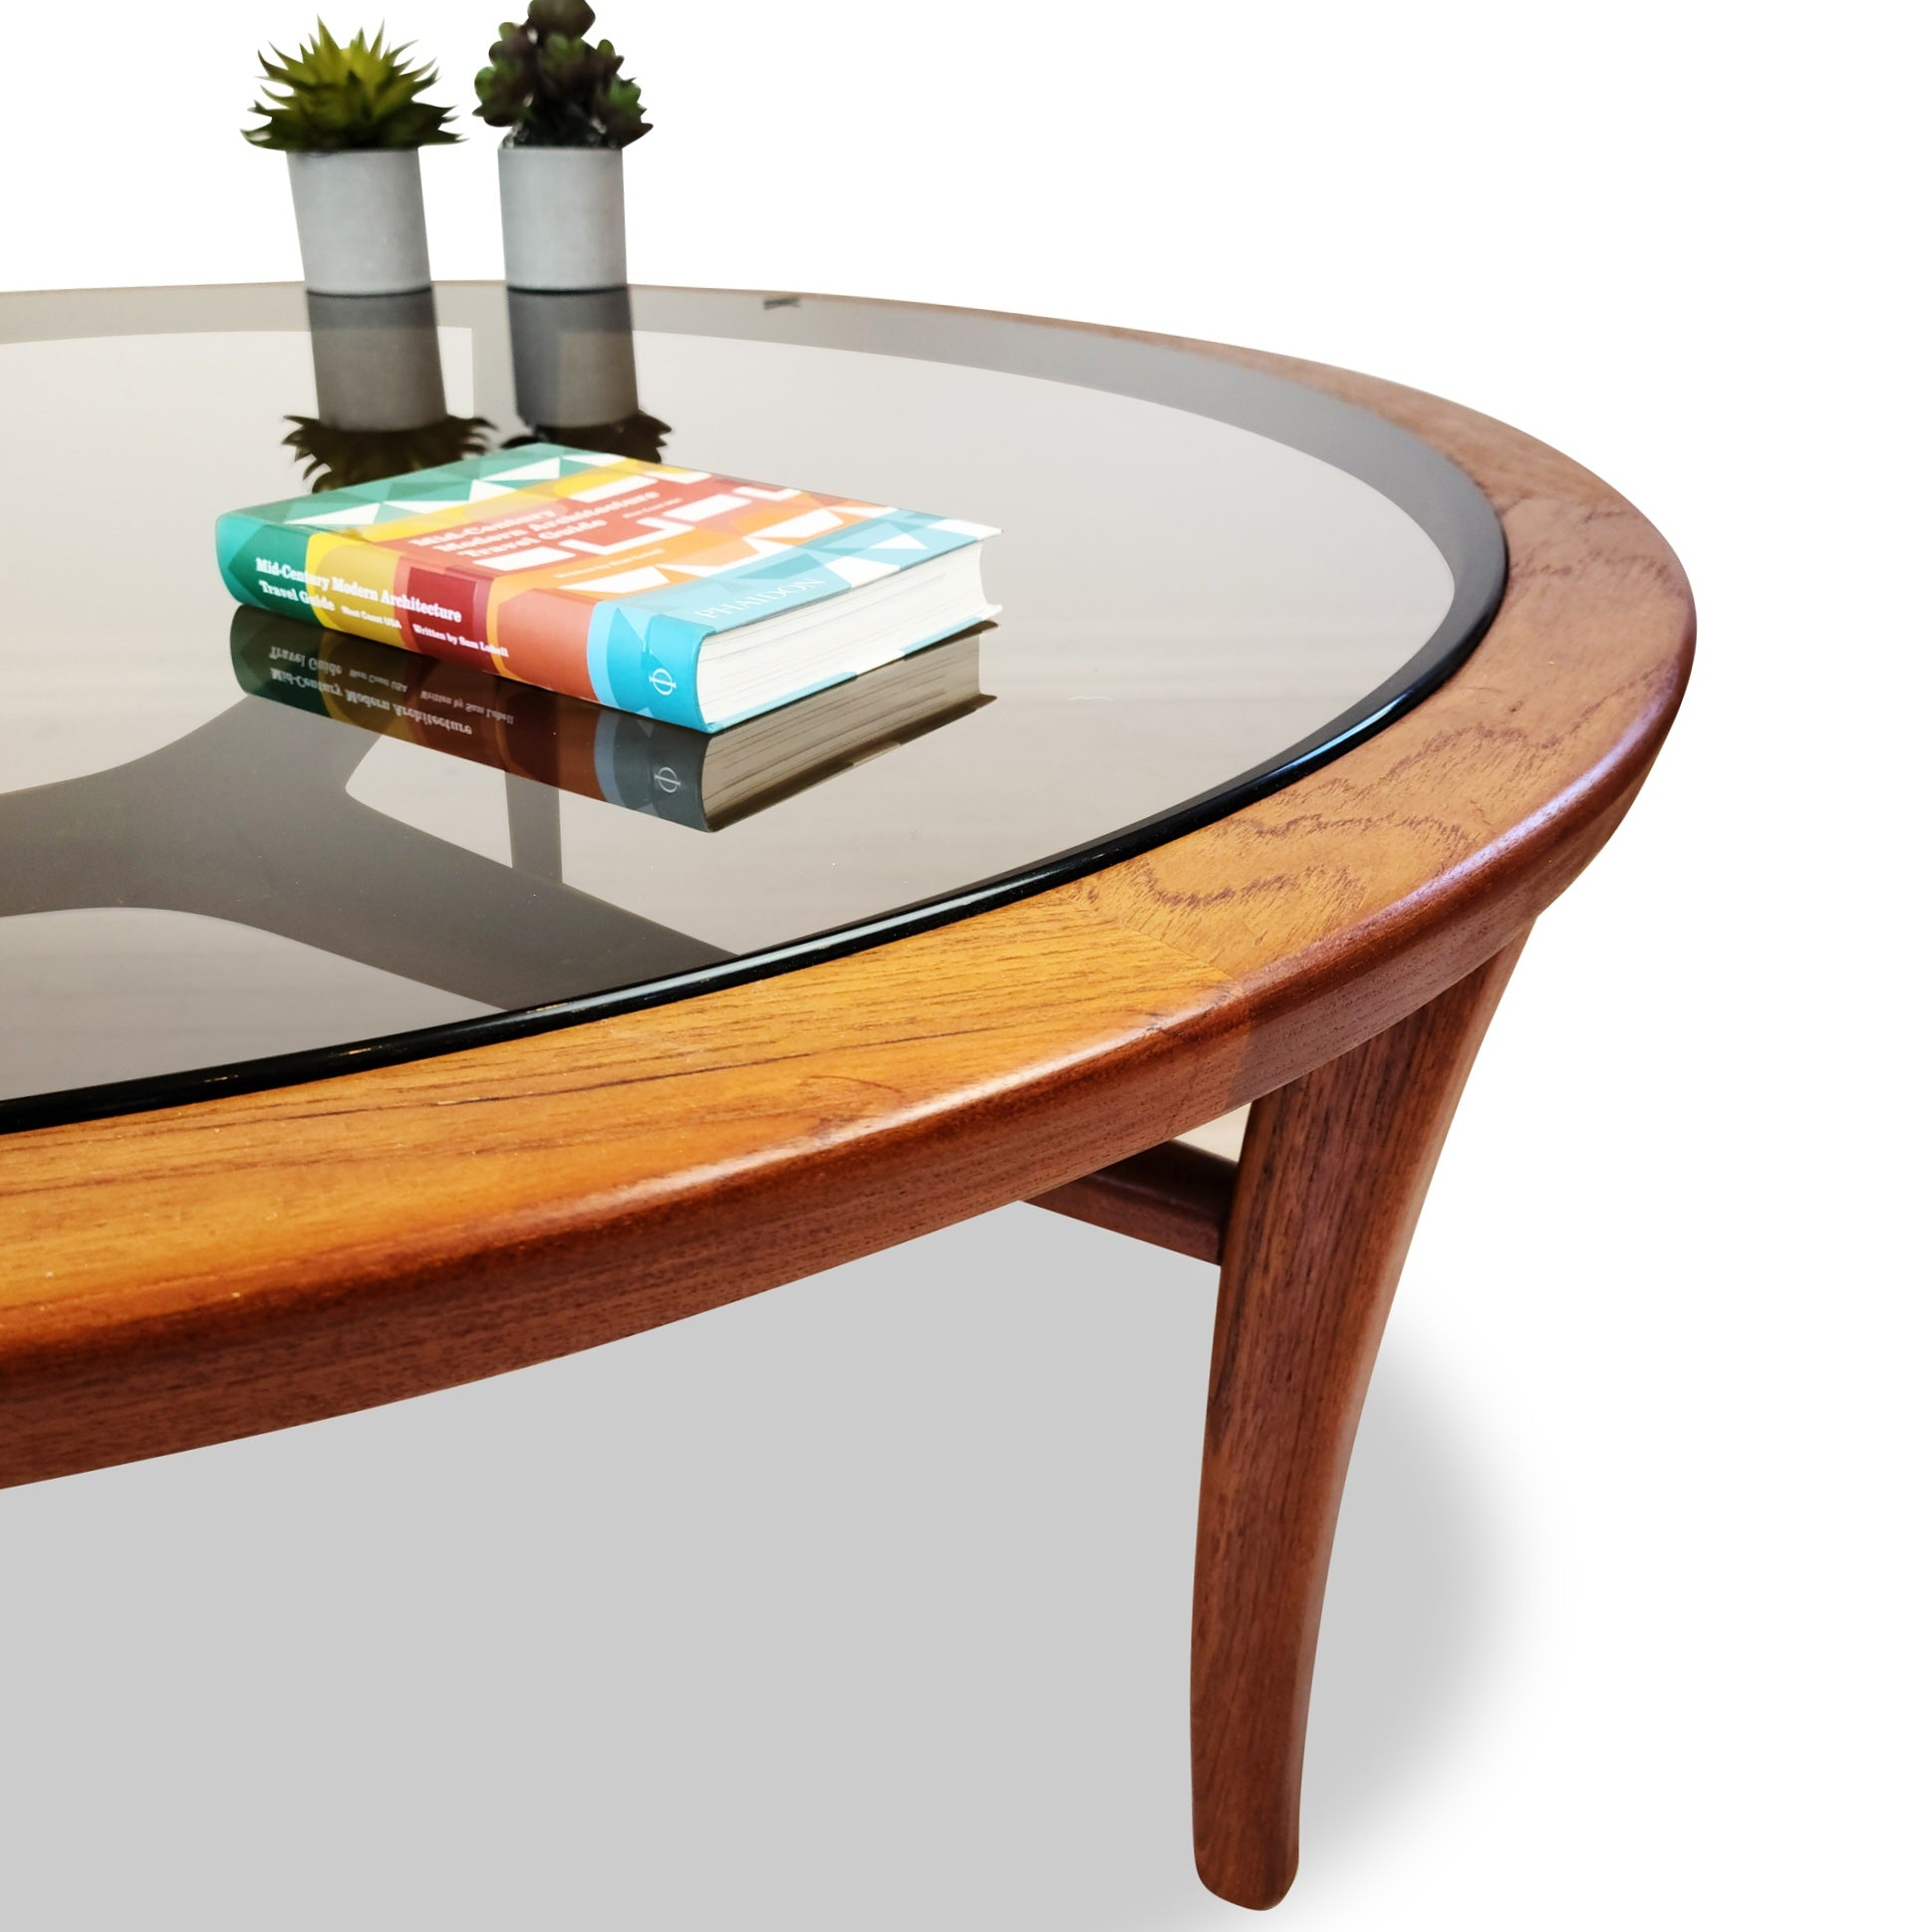 Vintage Teak Coffee Table with Tinted Glass